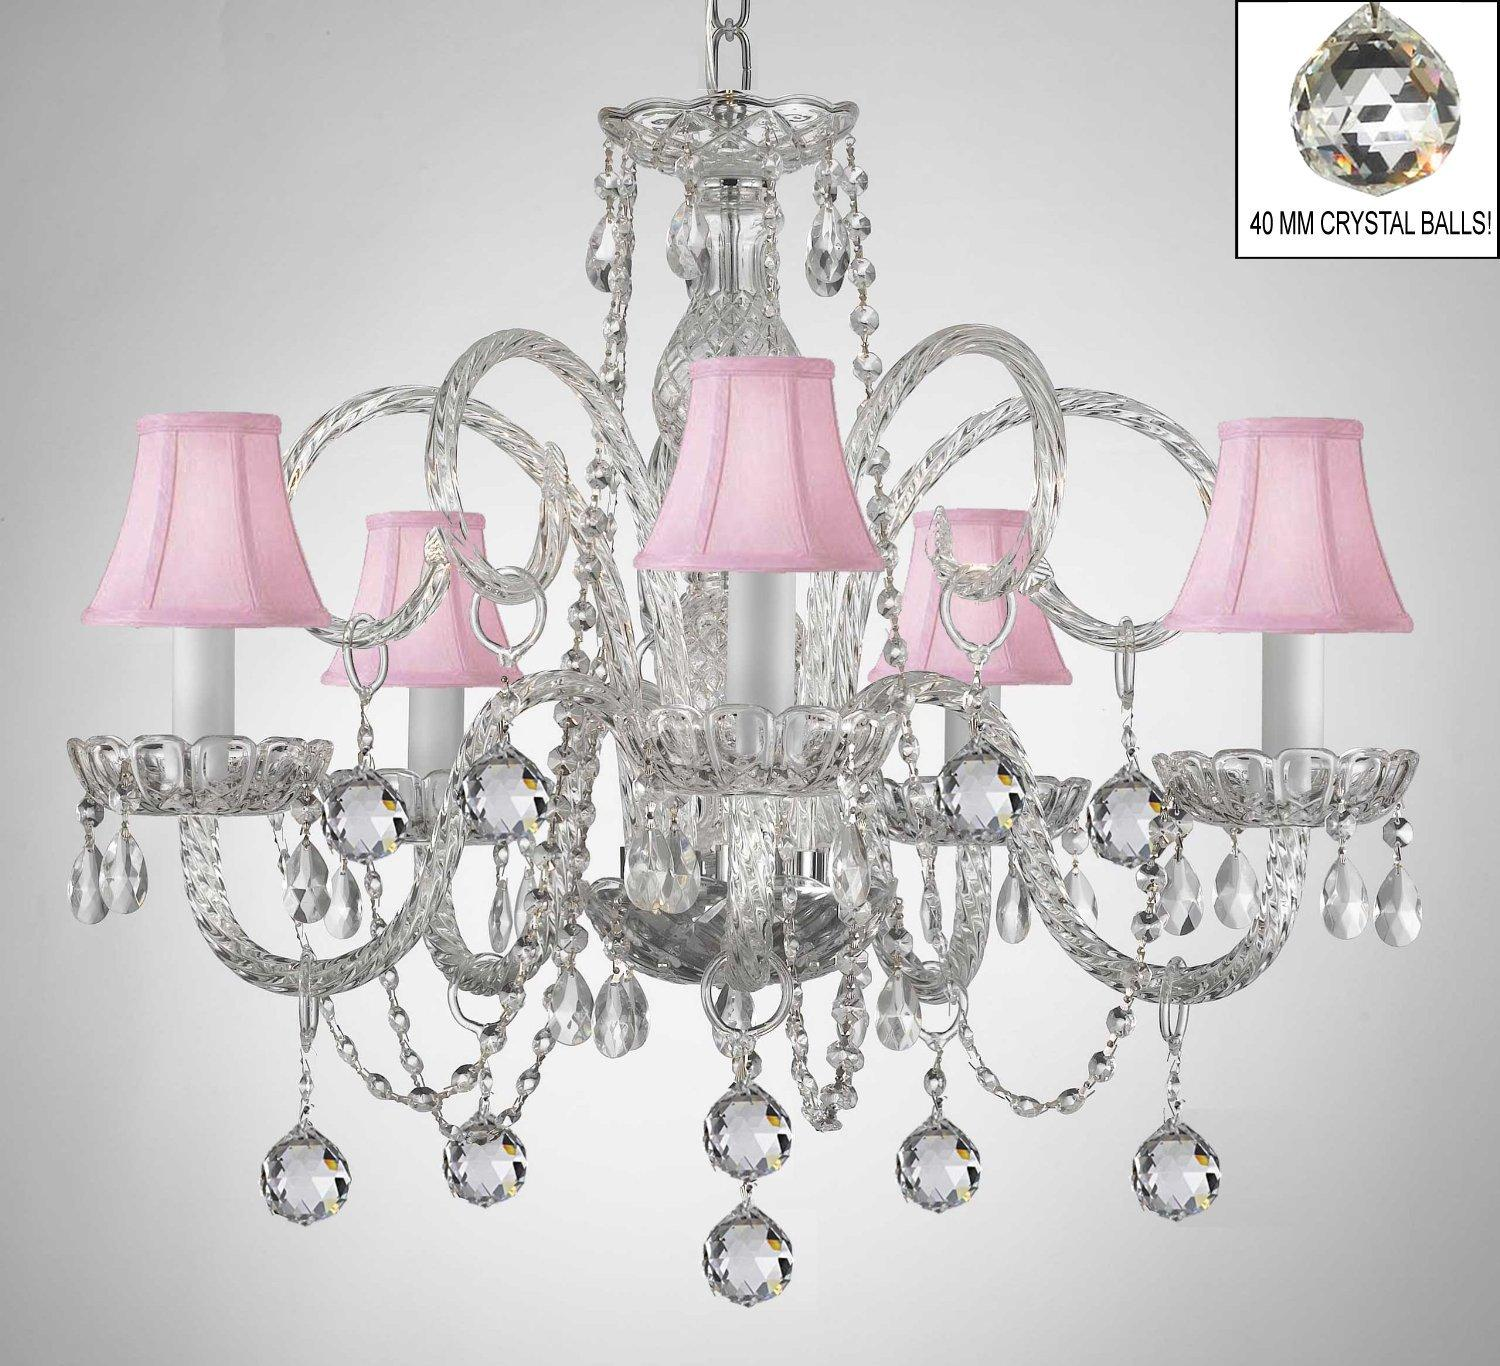 Crystal Chandelier With Pink Shades & Crystal Balls